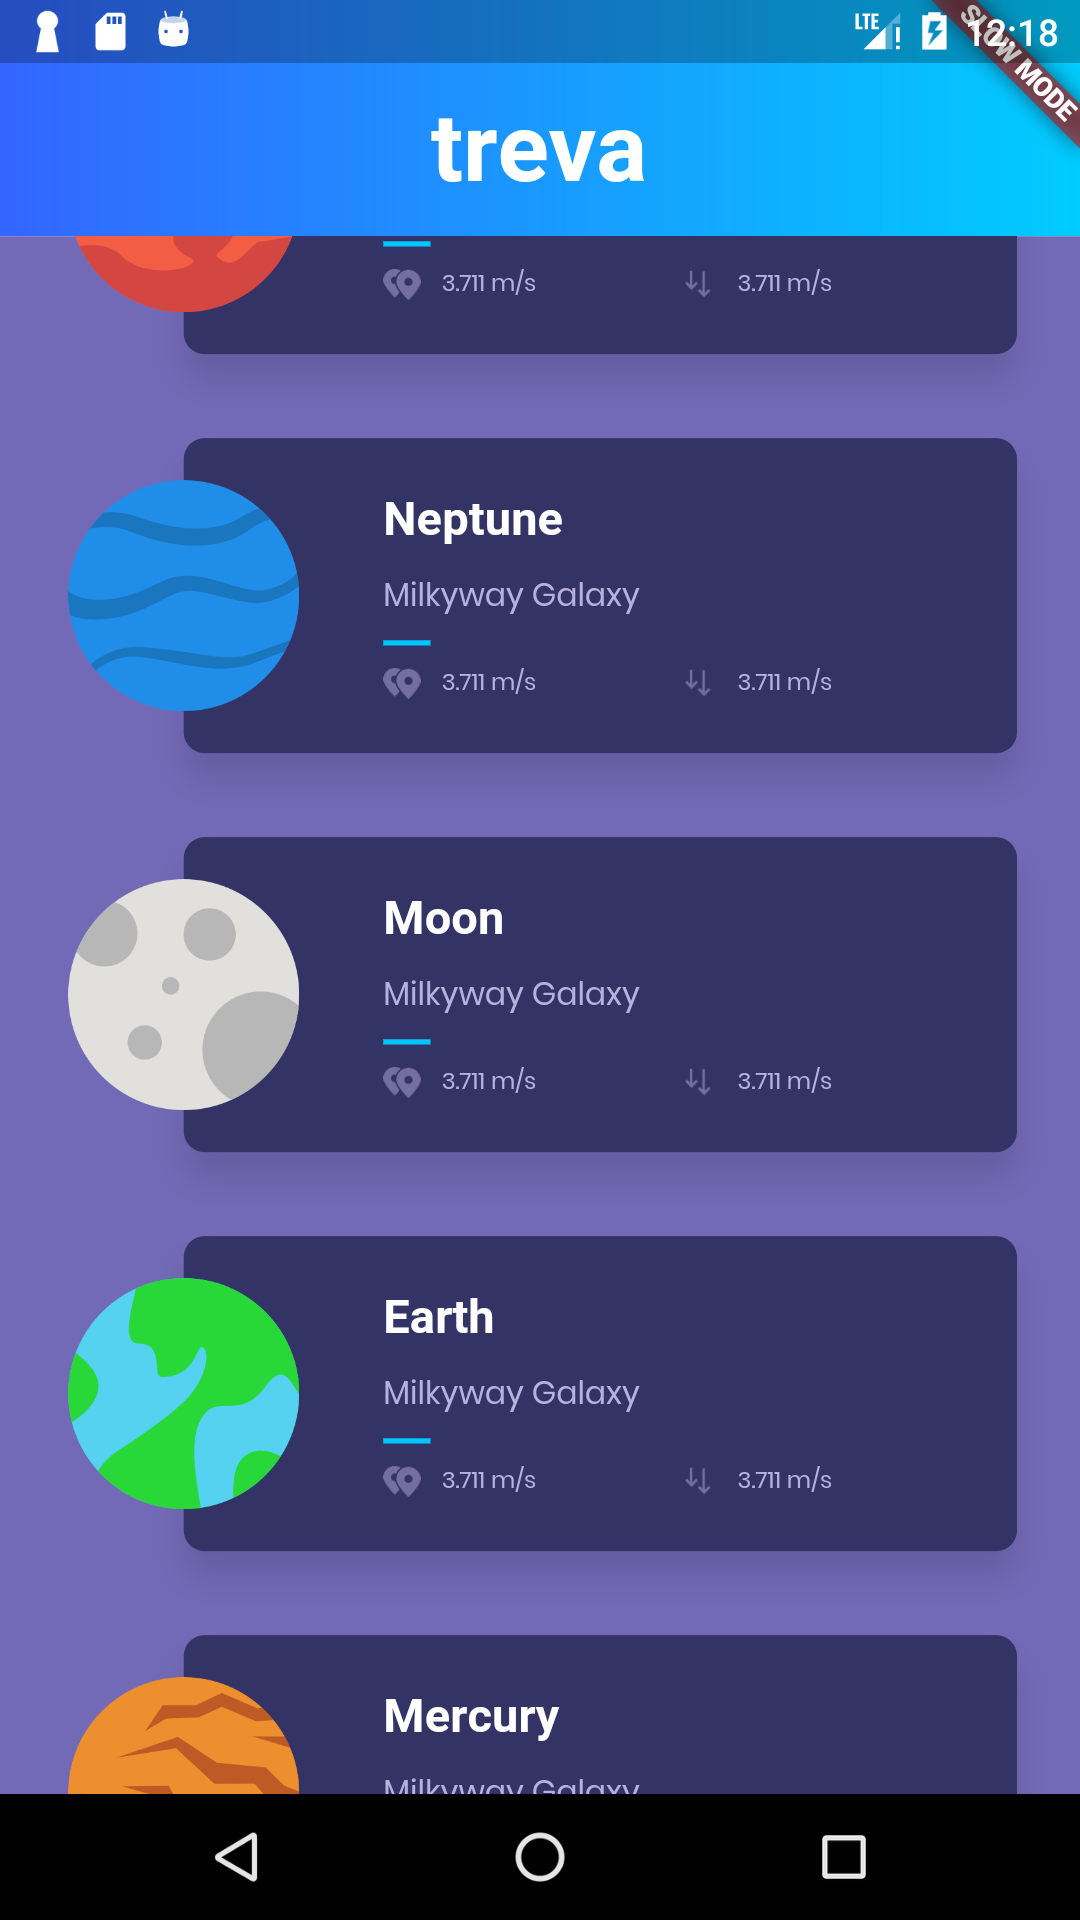 A nice list of planets